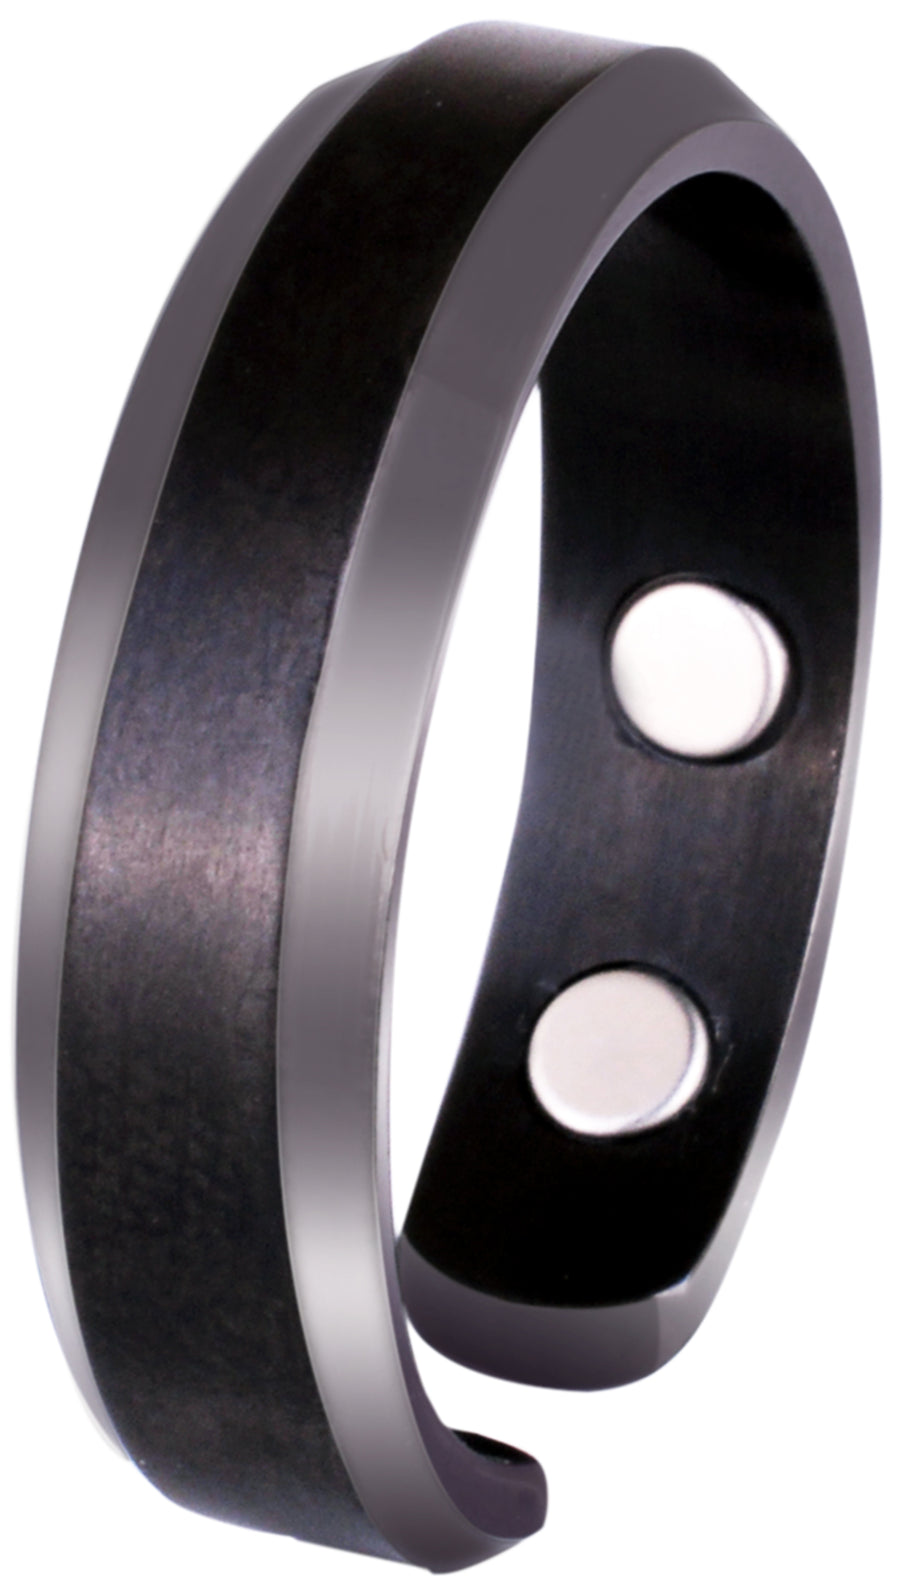 Elegant Titanium Magnetic Therapy Ring Gunmetal Gray, Size 10 - Smarter LifeStyle Shop